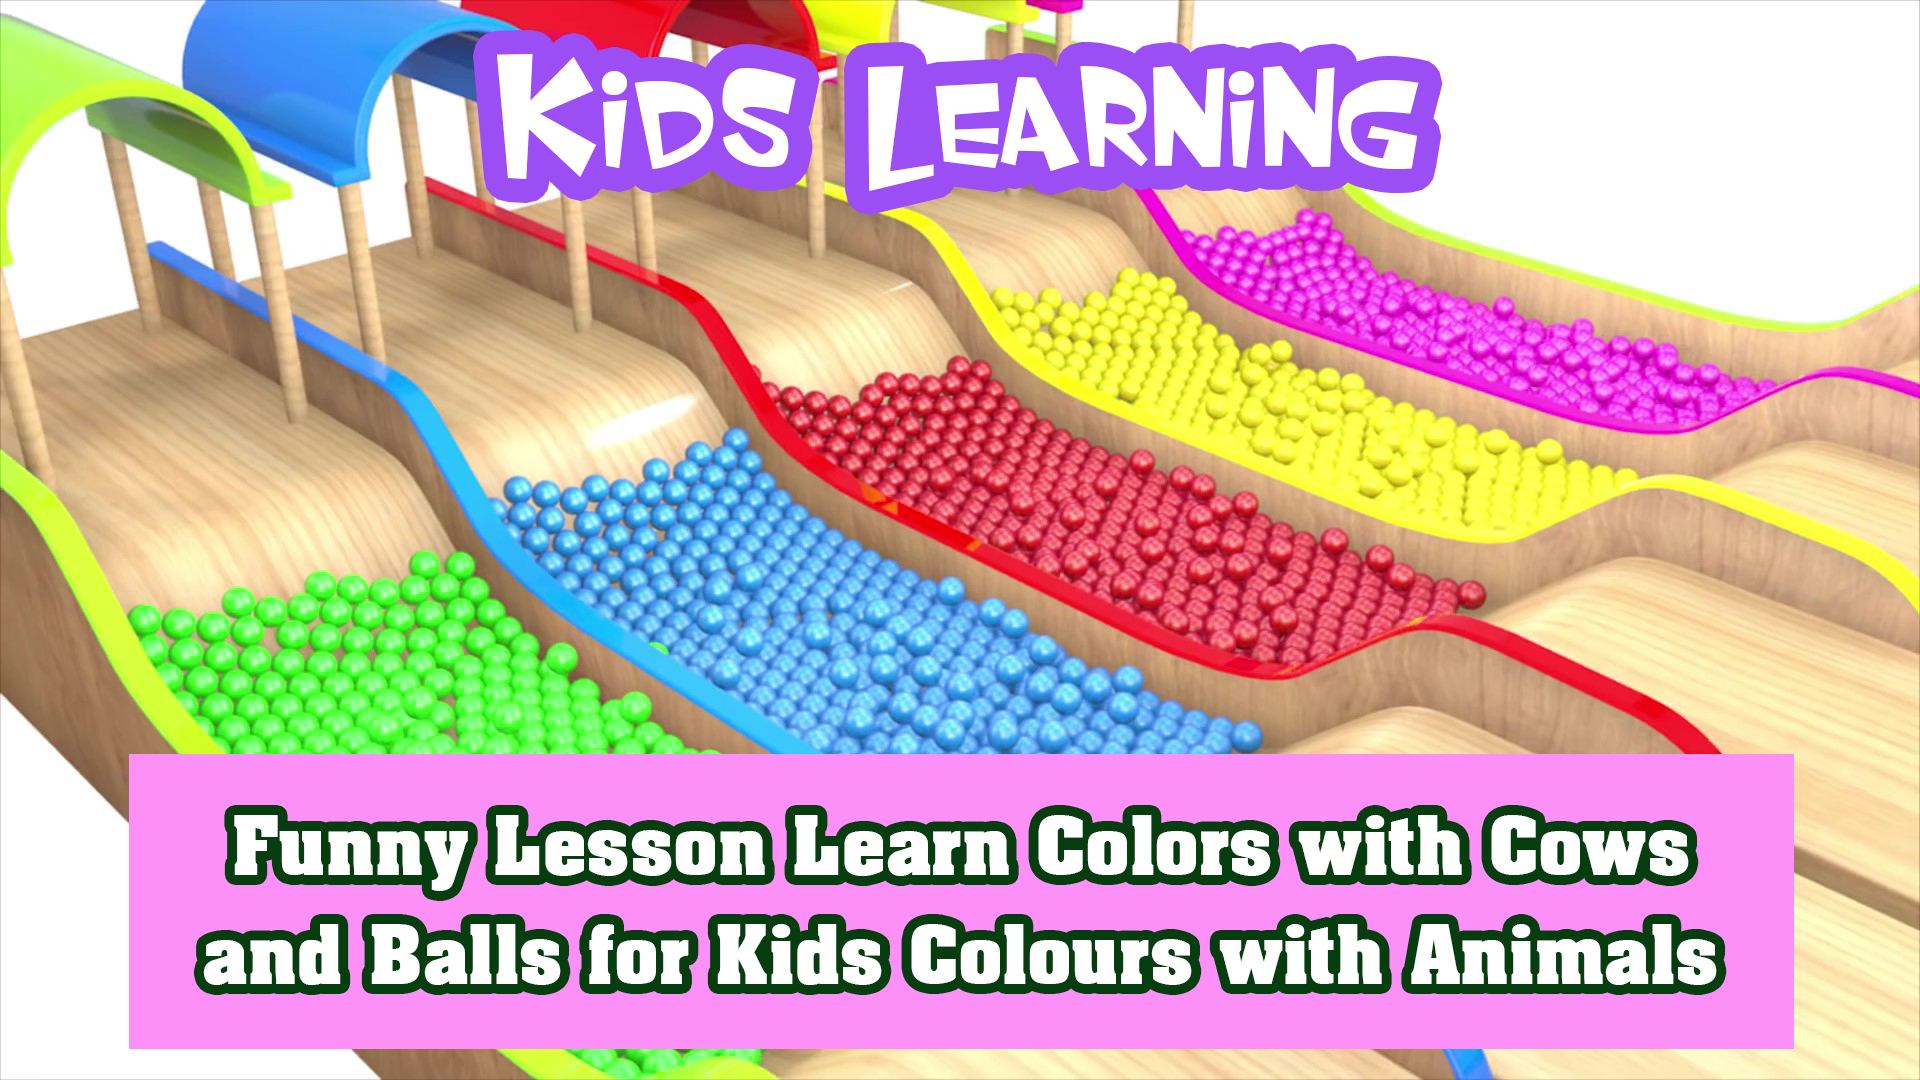 Funny Lesson Learn Colors with Cows and Balls for Kids Colours with Animals